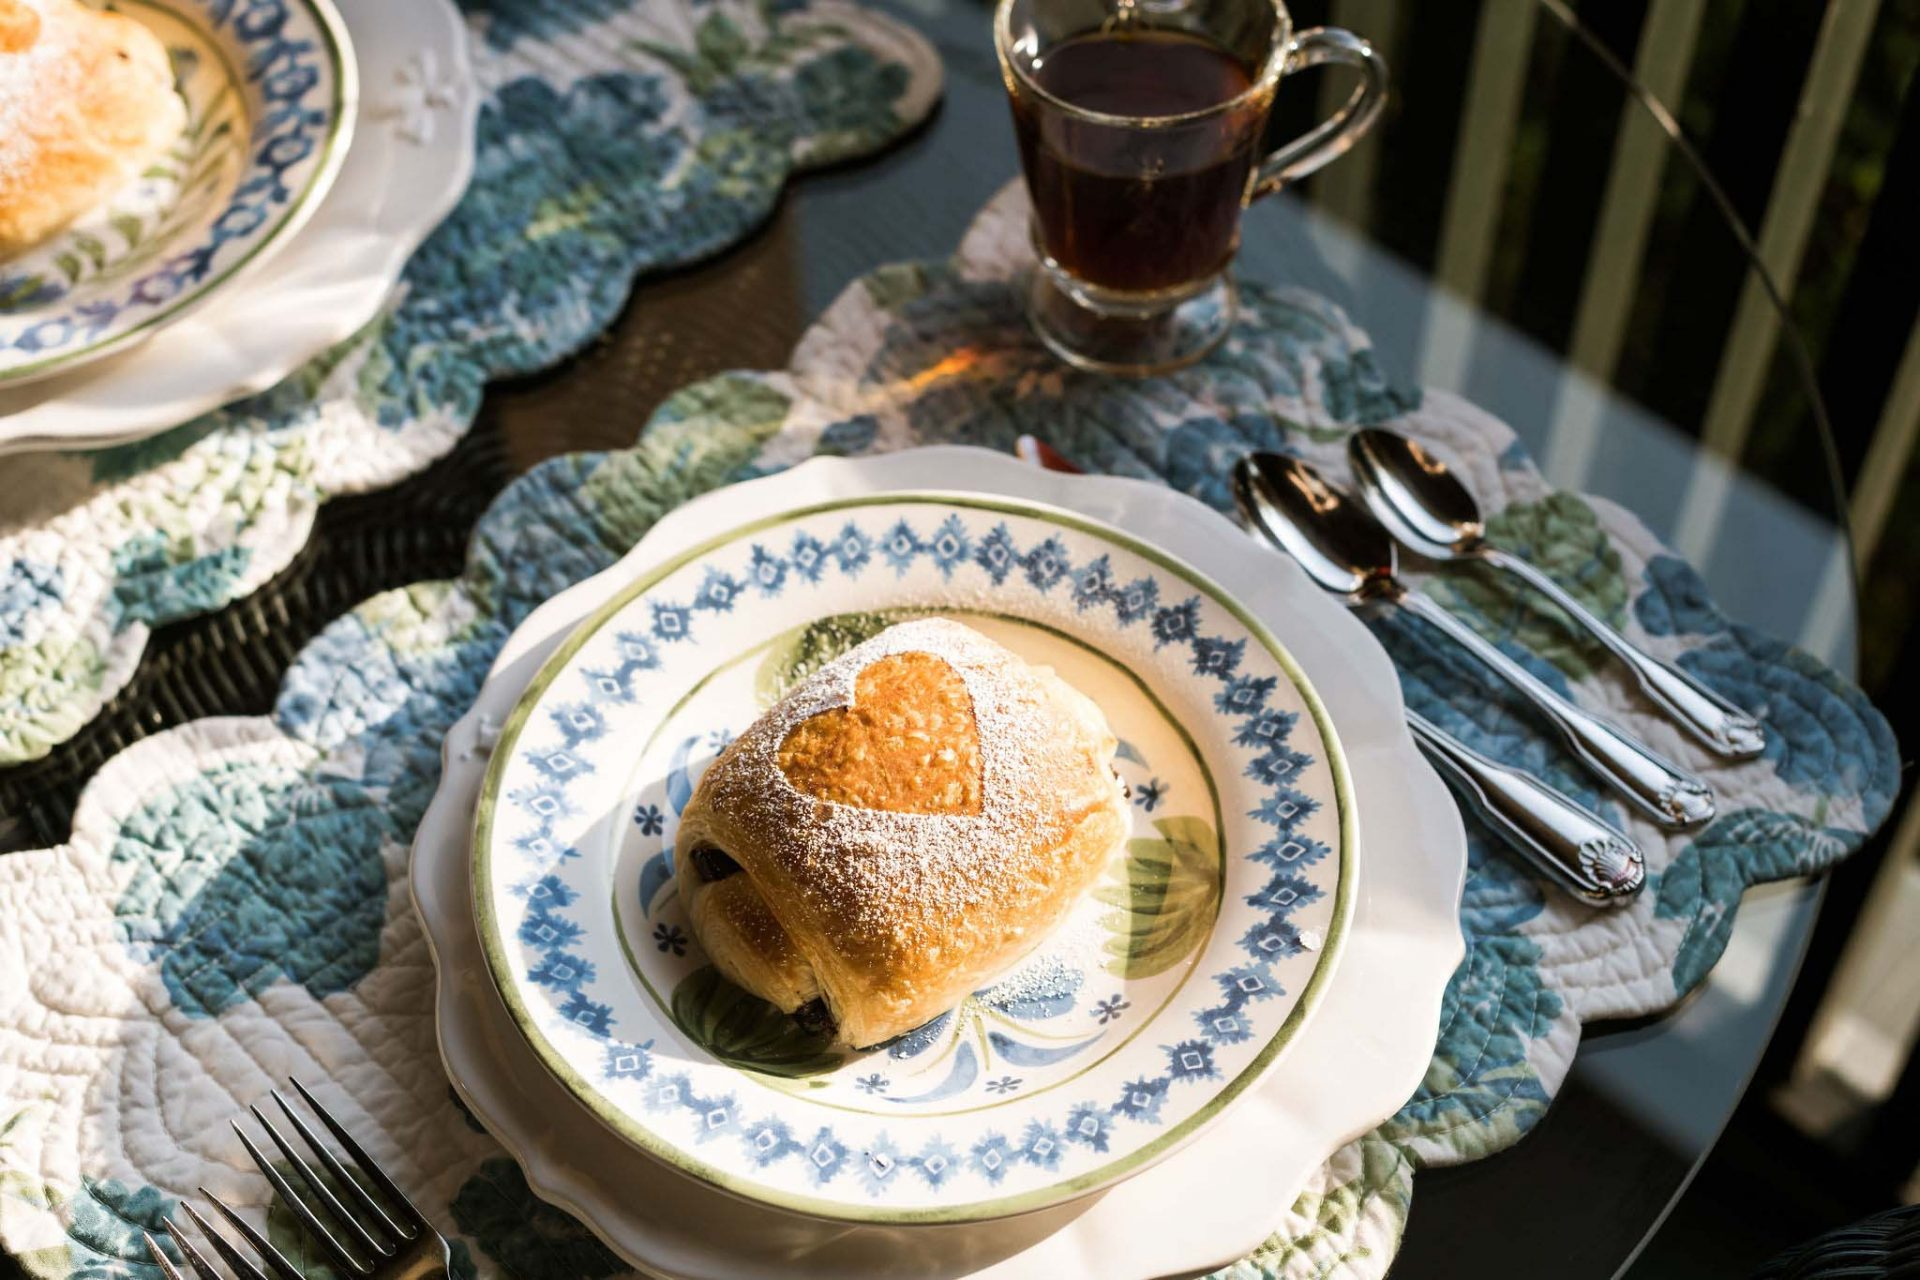 A close-up of a home-baked bun with a heart shaped from caster sugar. A floral placemat, set of cuttlery, and a glass with tea.